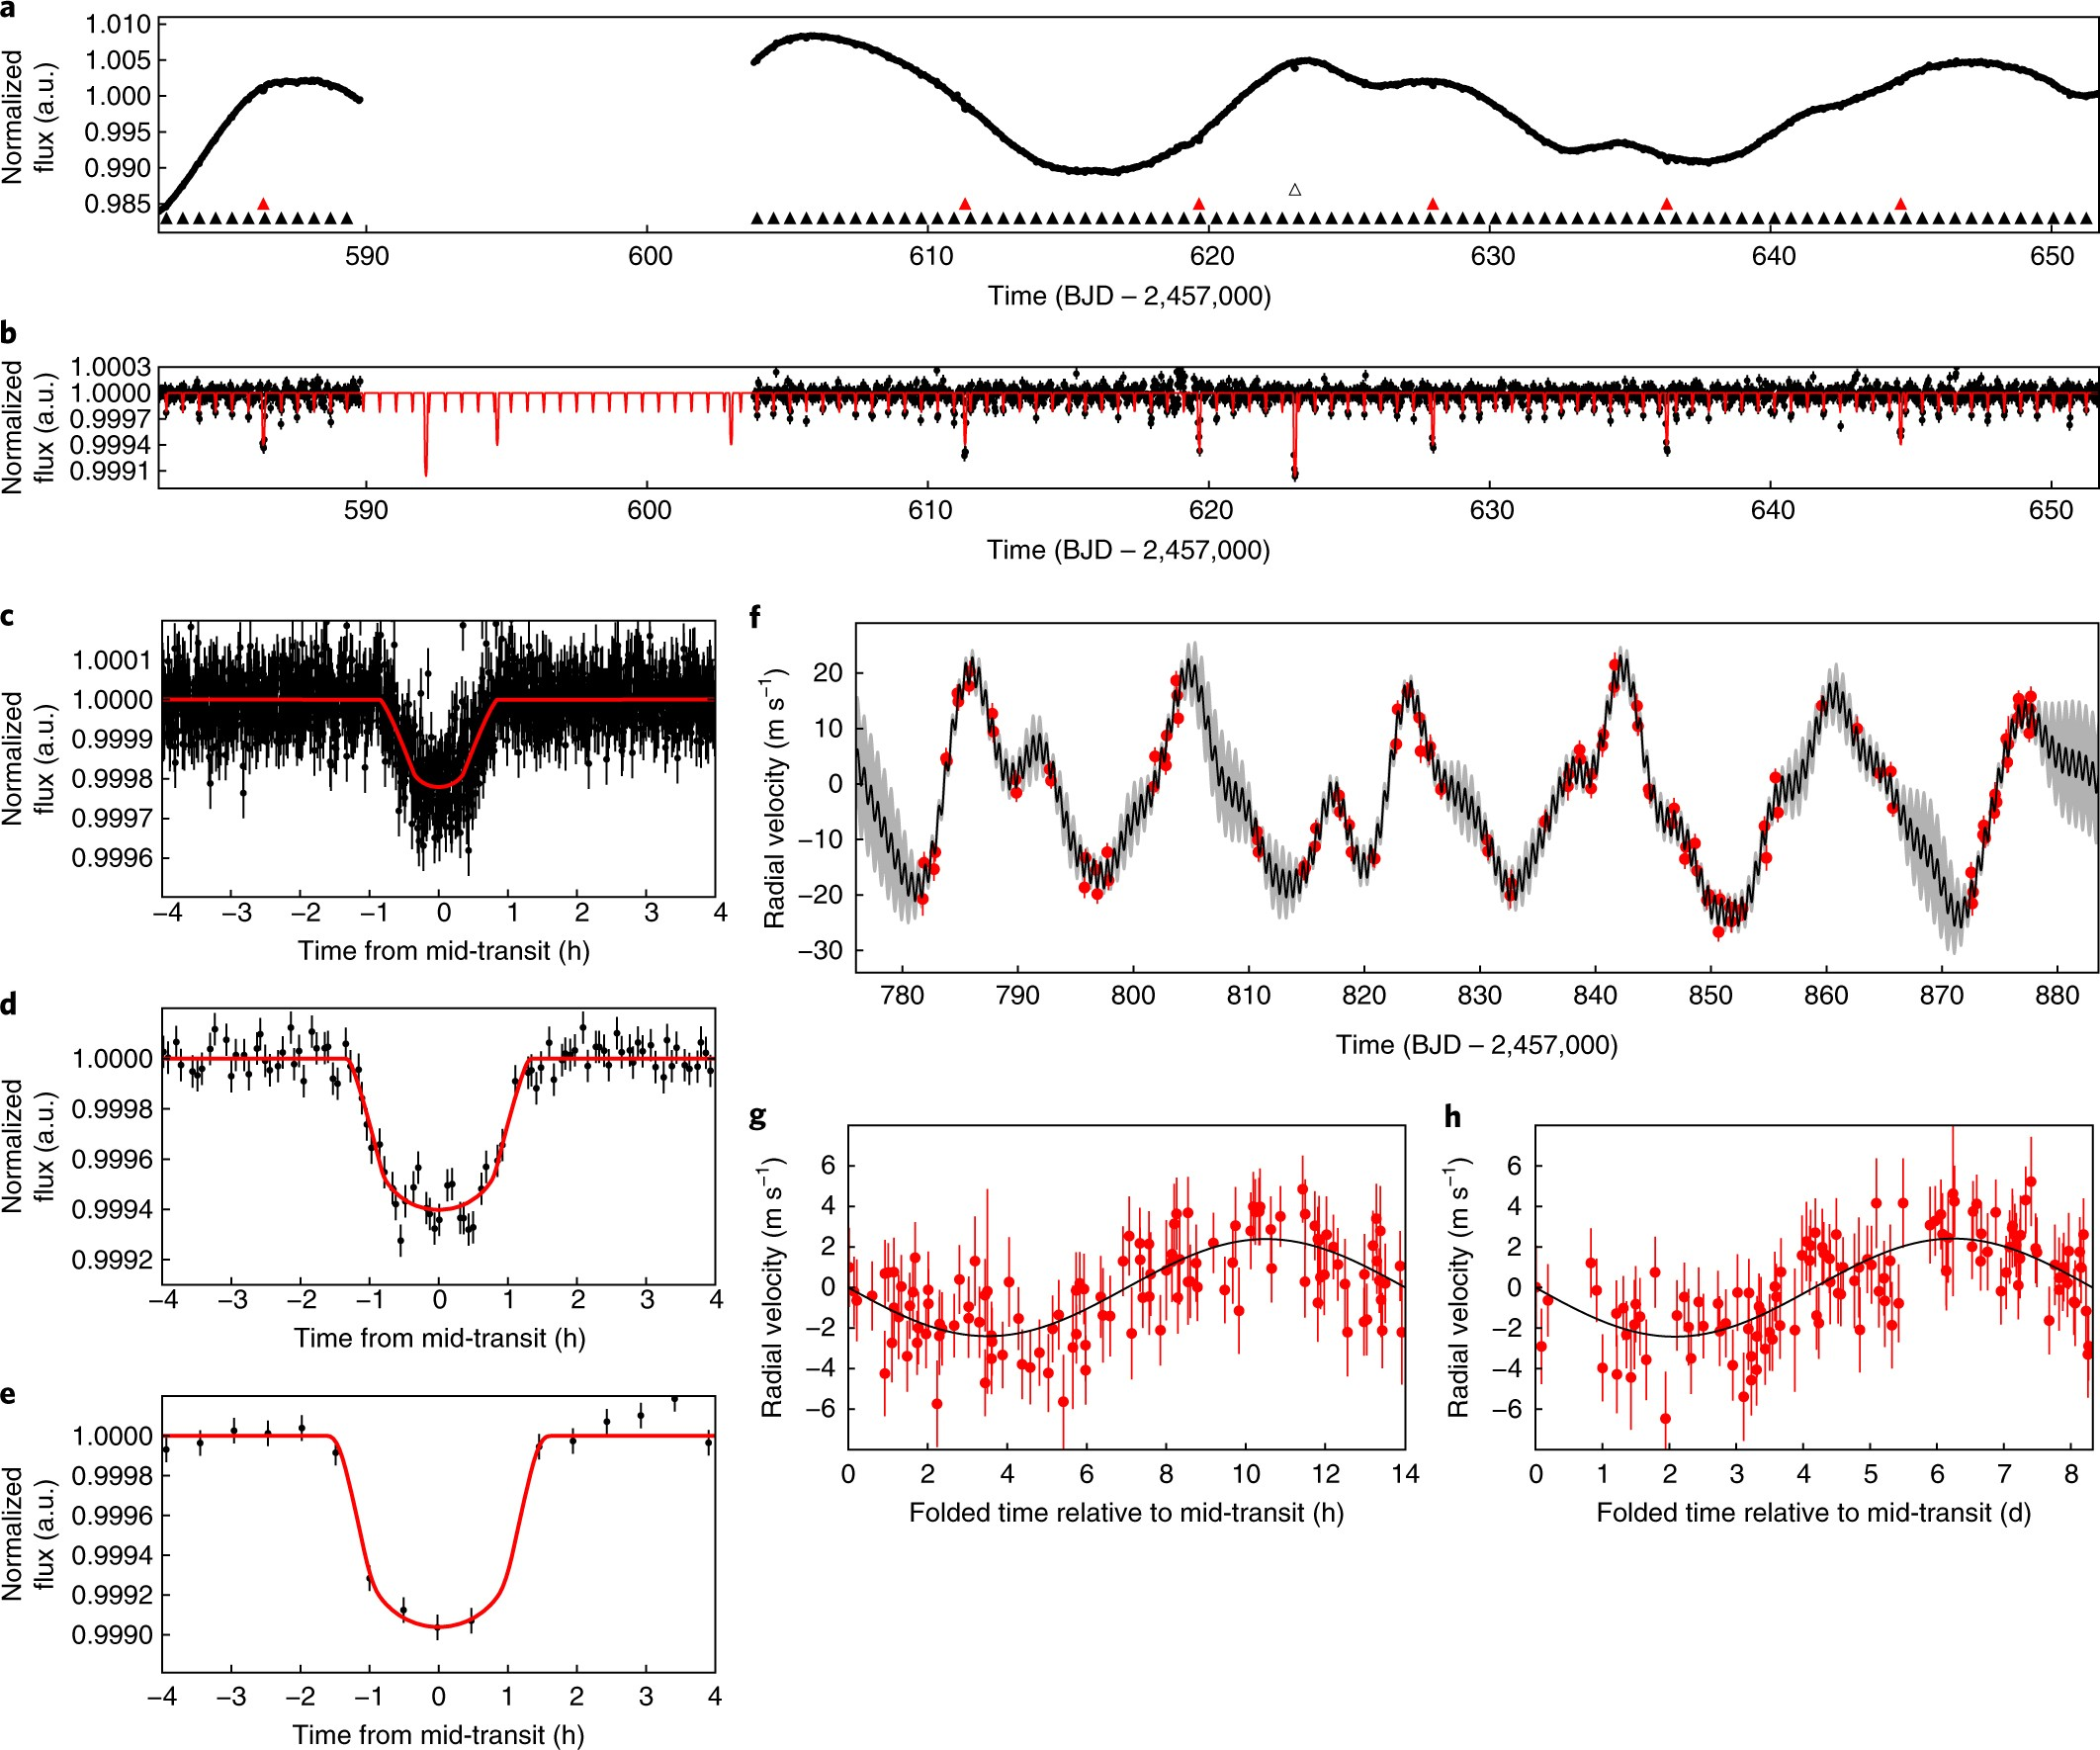 An Earth-sized exoplanet with a Mercury-like composition